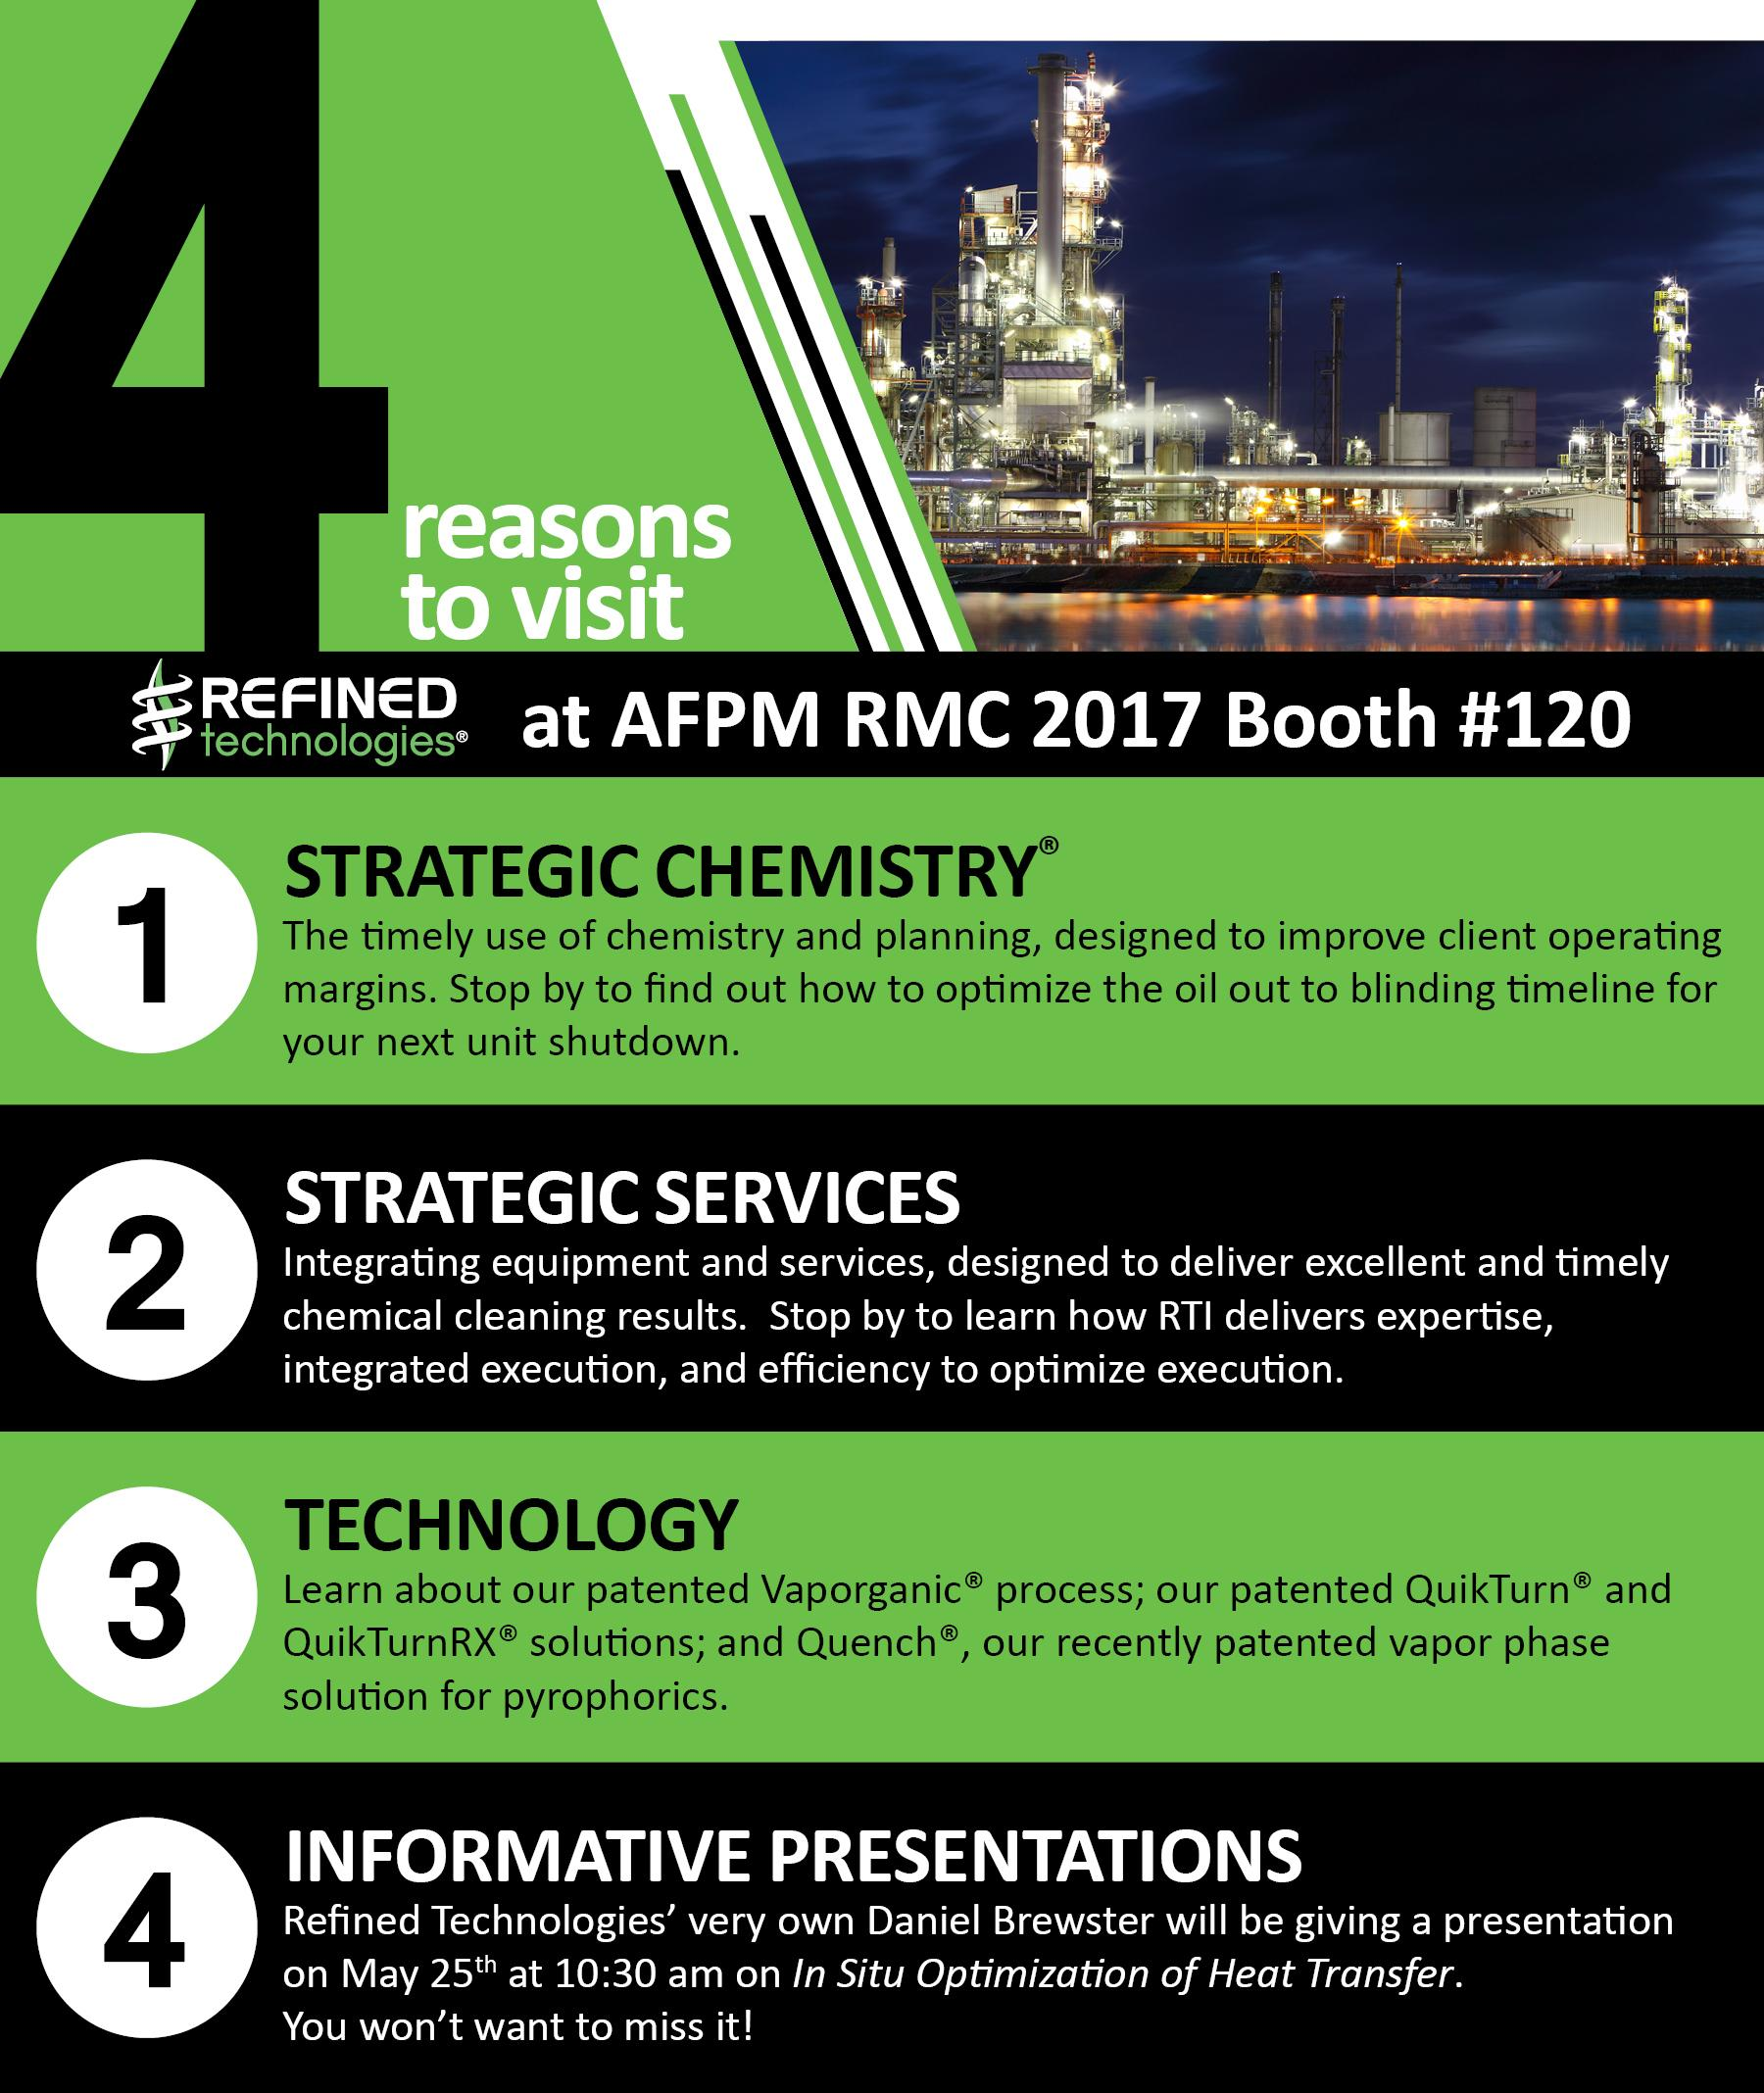 Don't forget to stop by Booth #120 at the American Fuel & Petrochemical Manufacturers (AFPM)